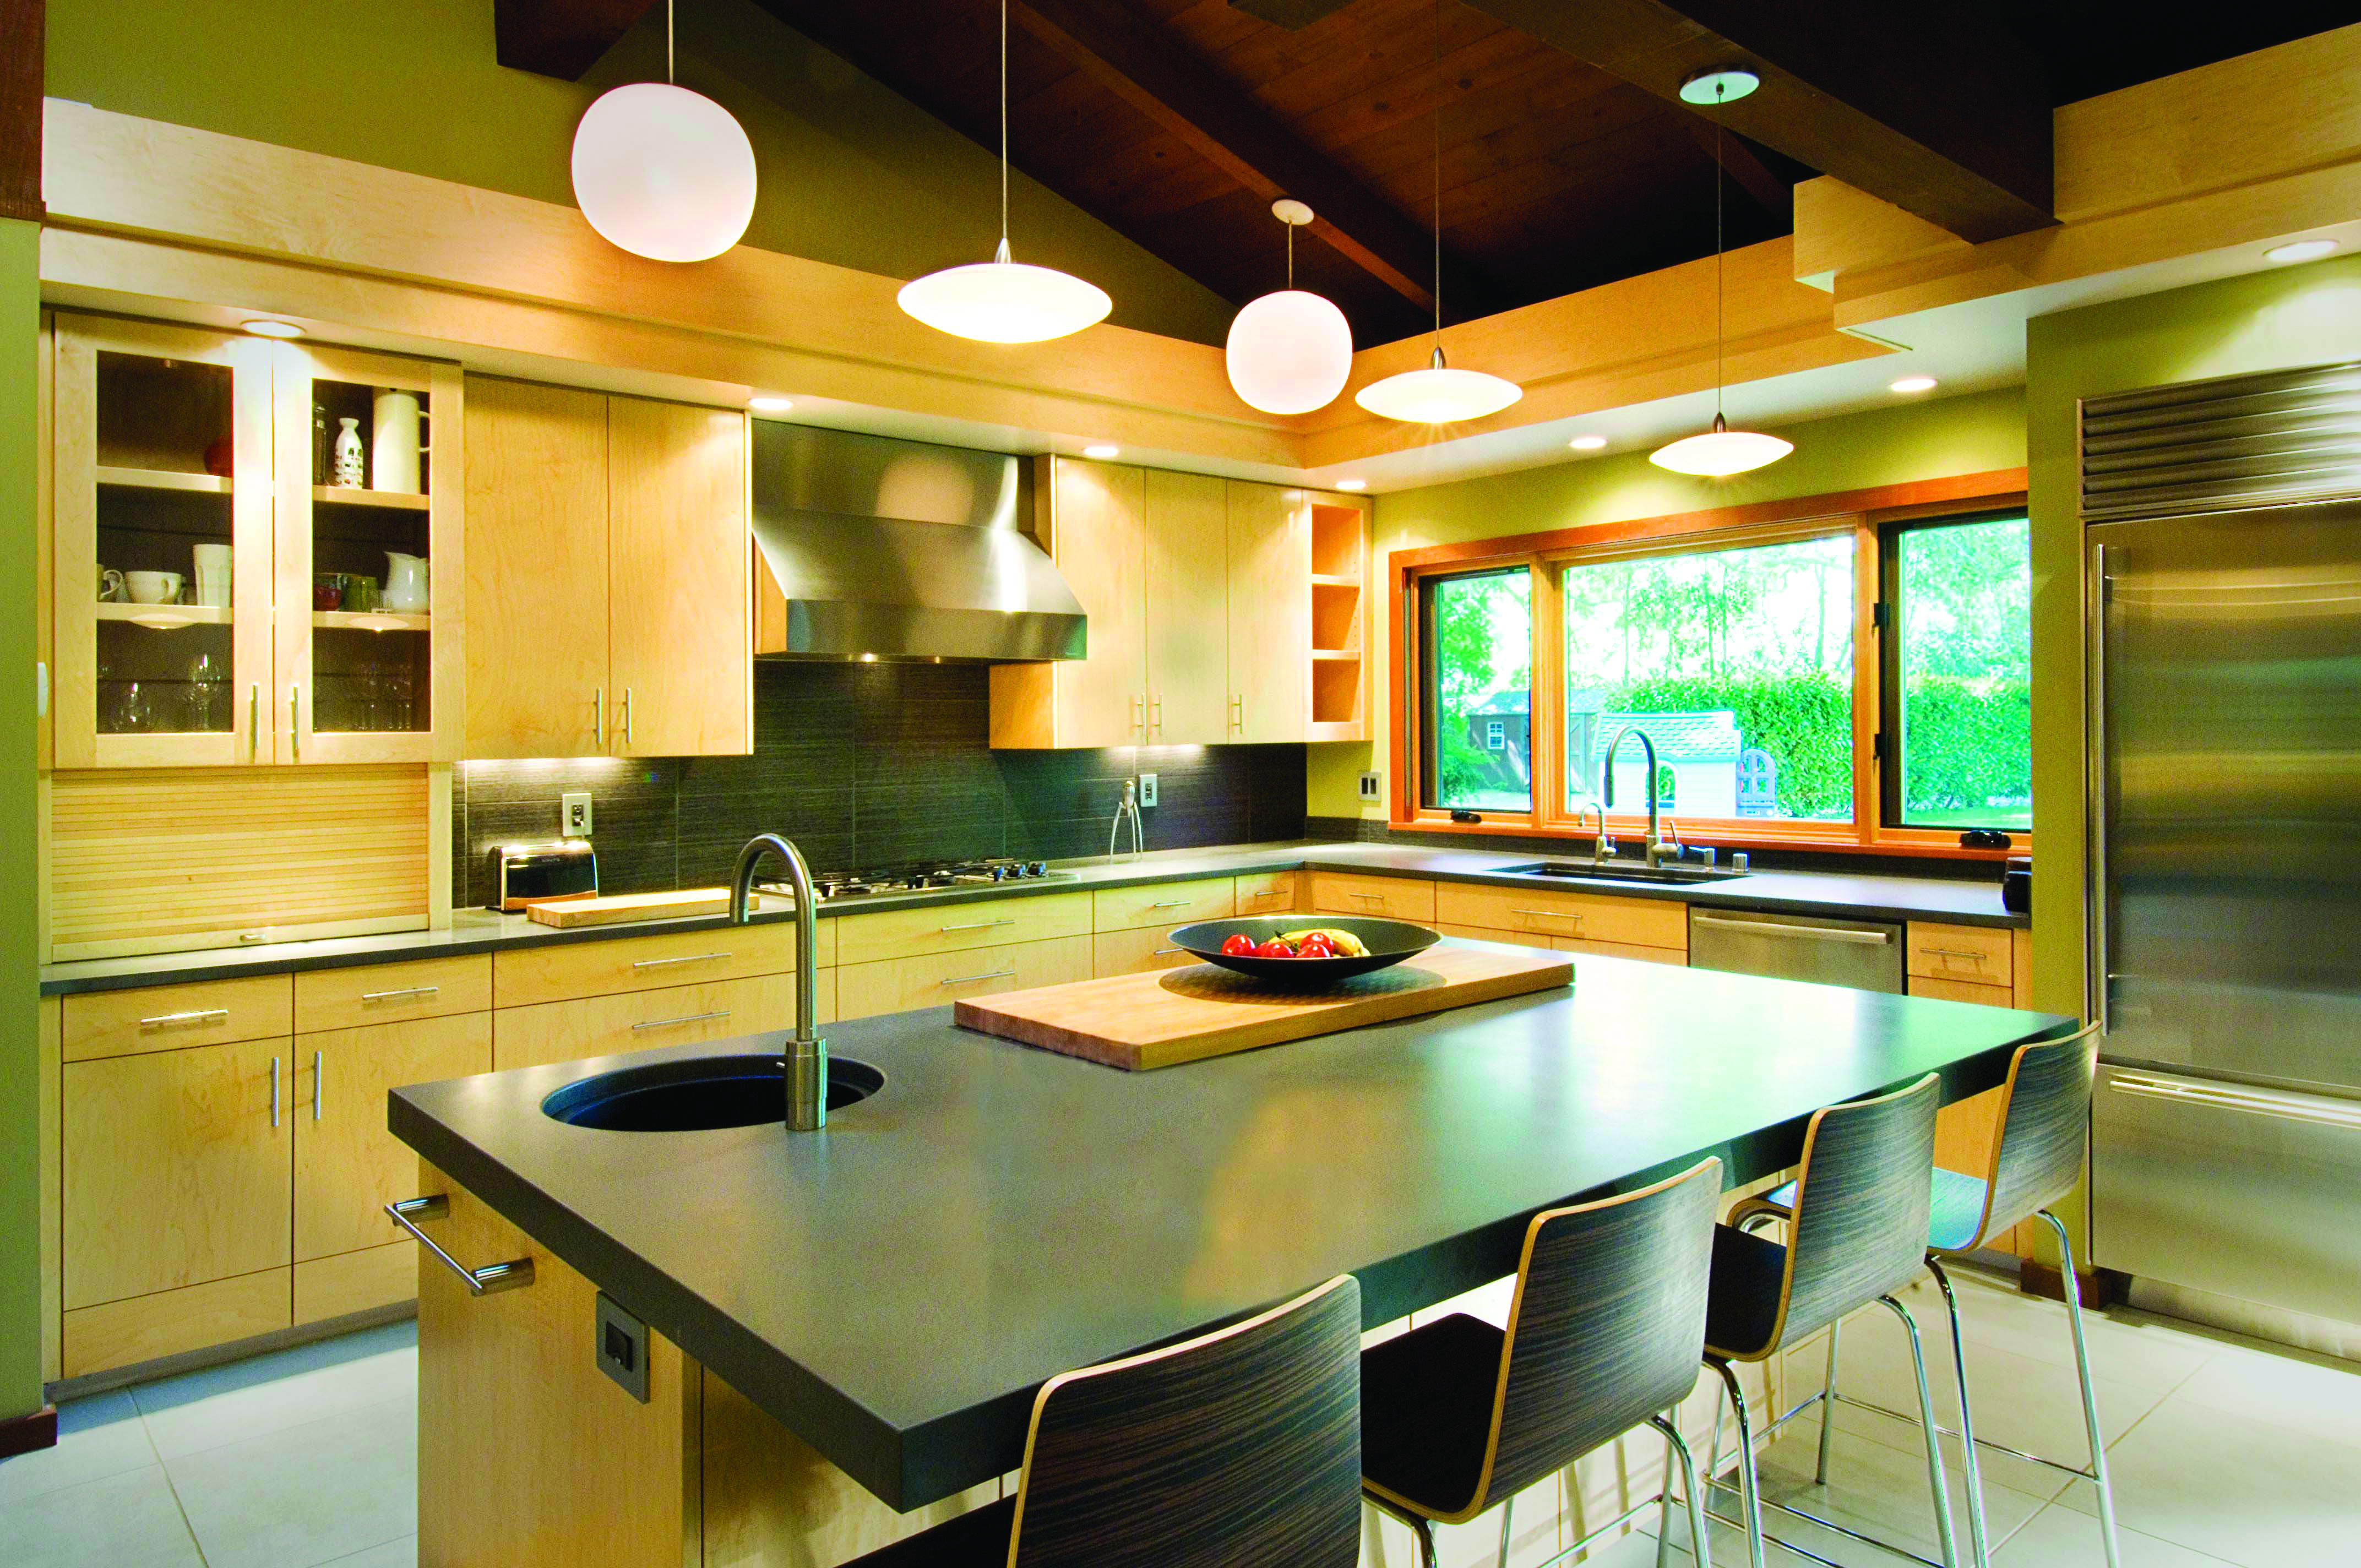 Natural Lighting Combined With Overhead And Task Can Make A Kitchen Functional